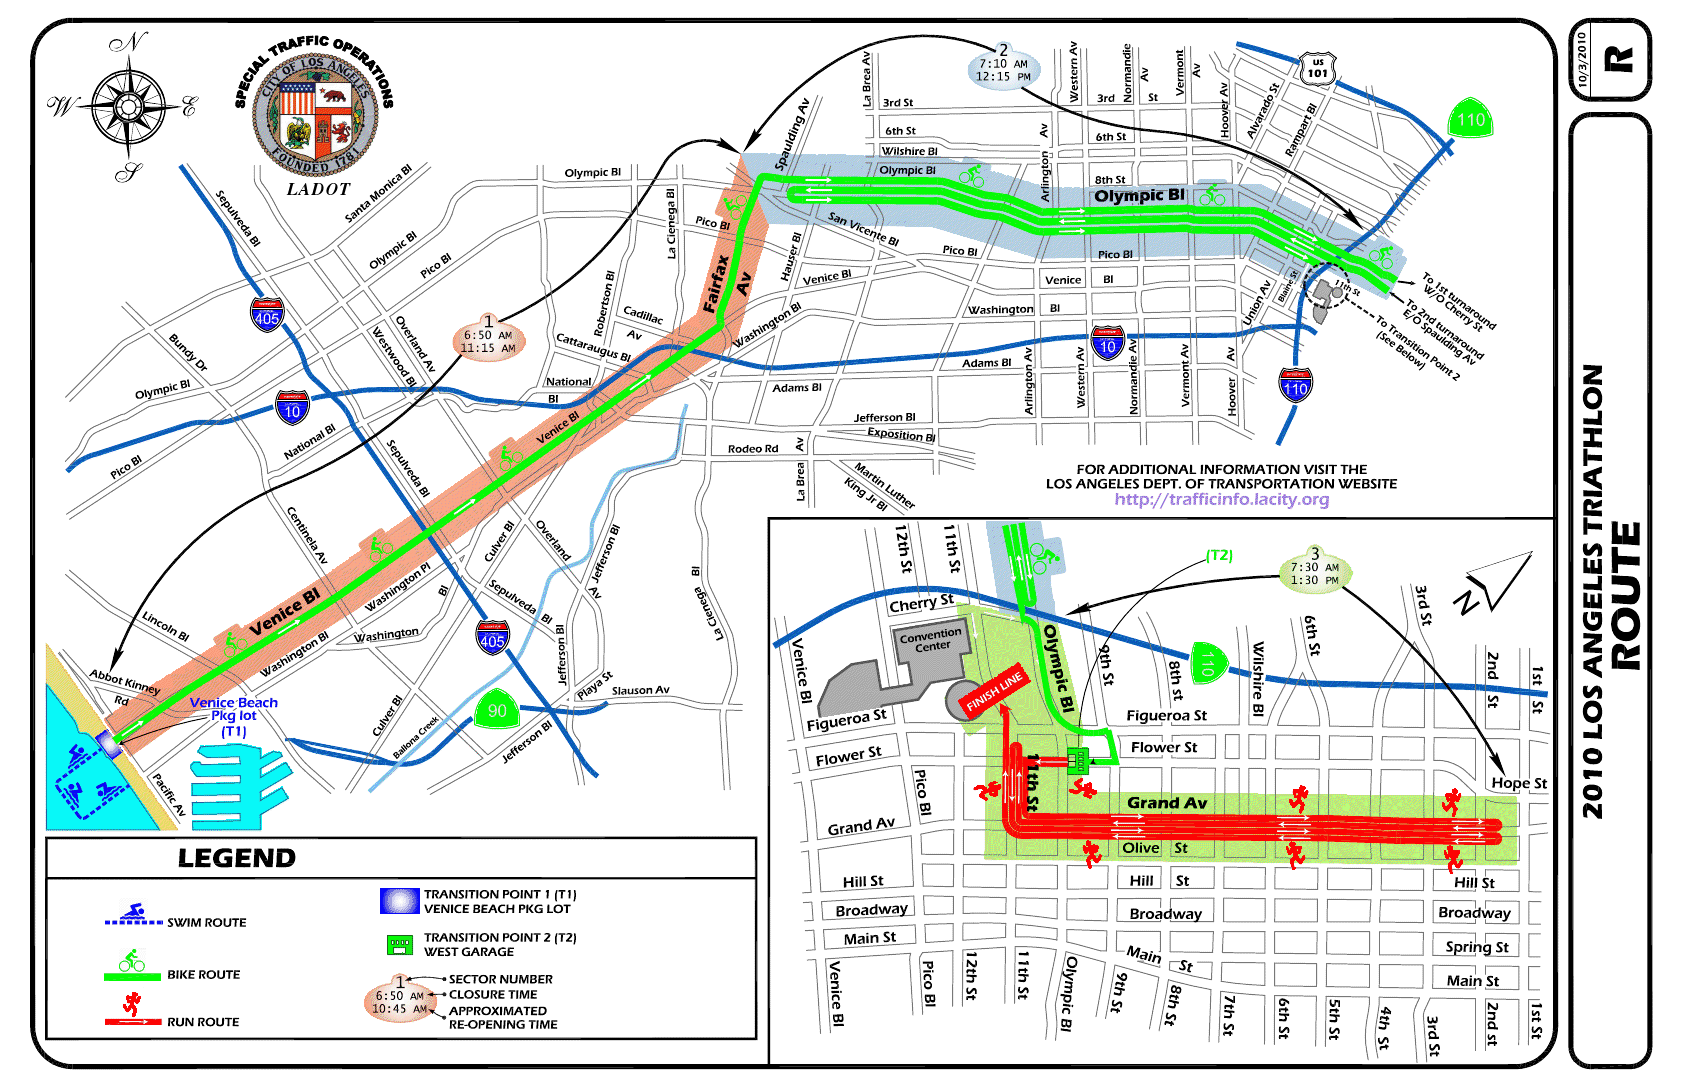 Traithlon street closures. Image via LADOT.